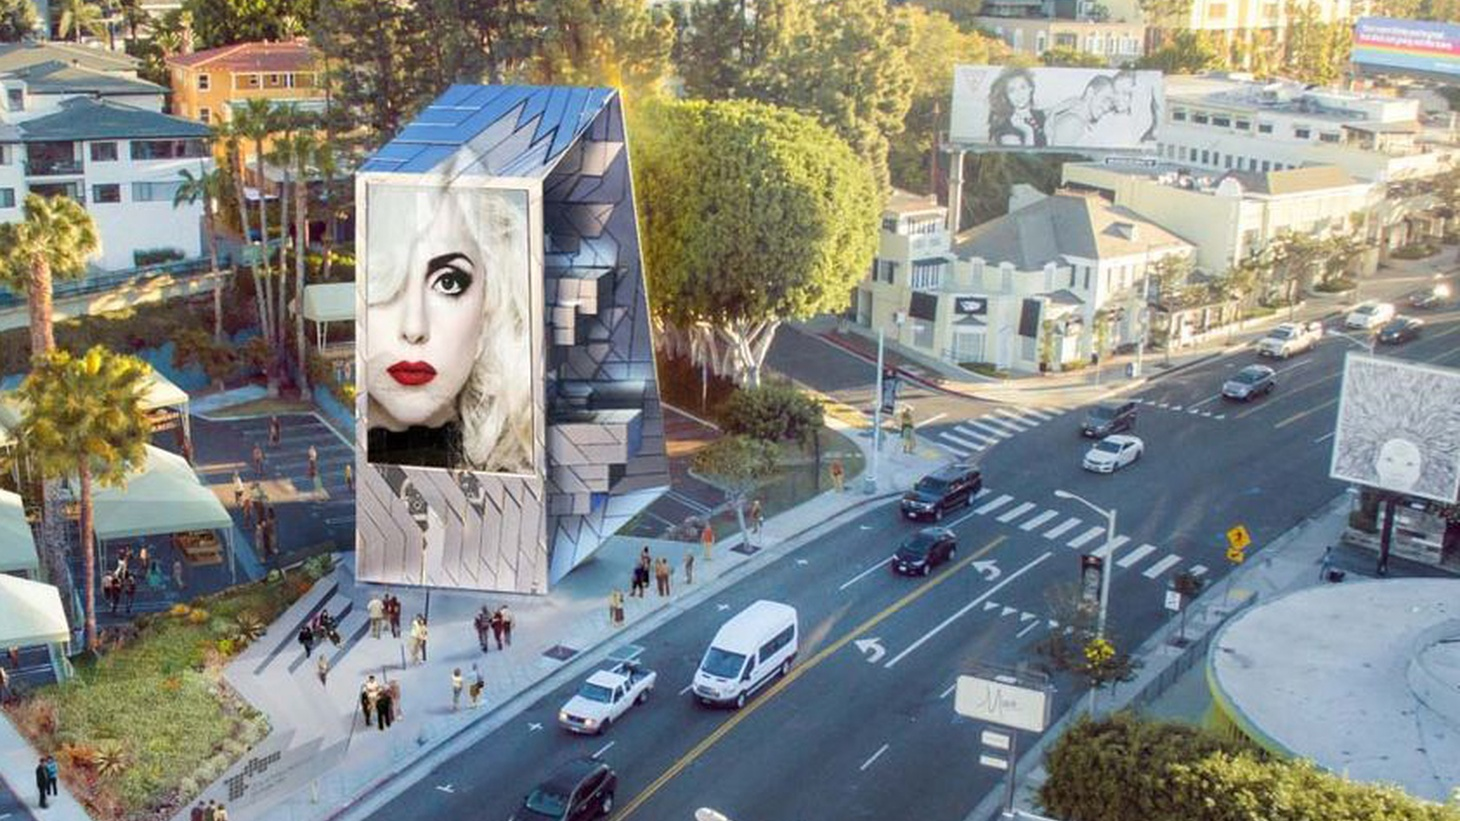 Do you hate digital billboards? A lot of people do, and so the City of West Hollywood, in a bid to create a lovable digital billboard on a site it owns on the Sunset Strip, has created a design competition for ideas.